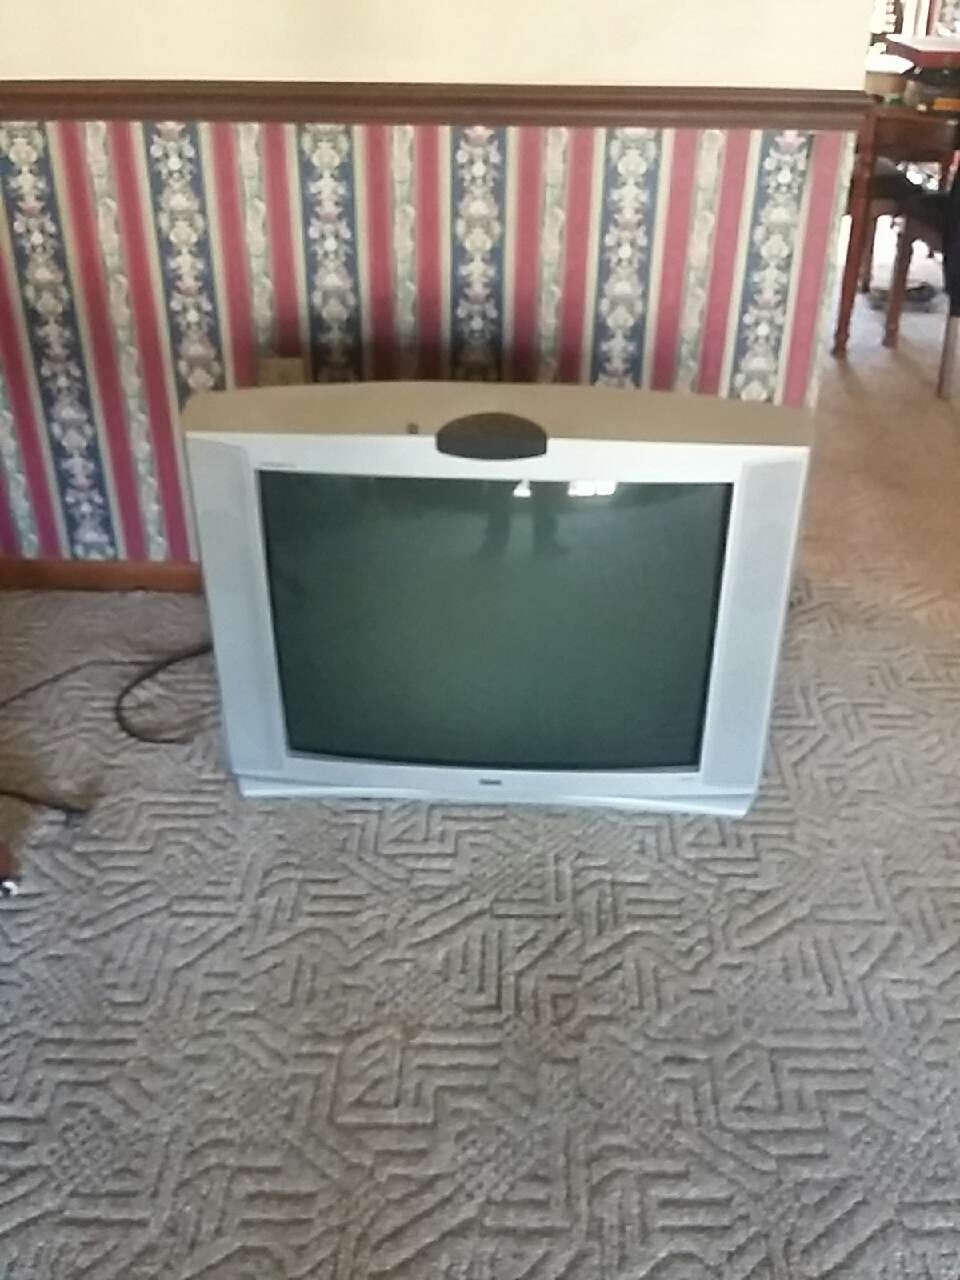 Used electronics in Barboursville, WV - letgo